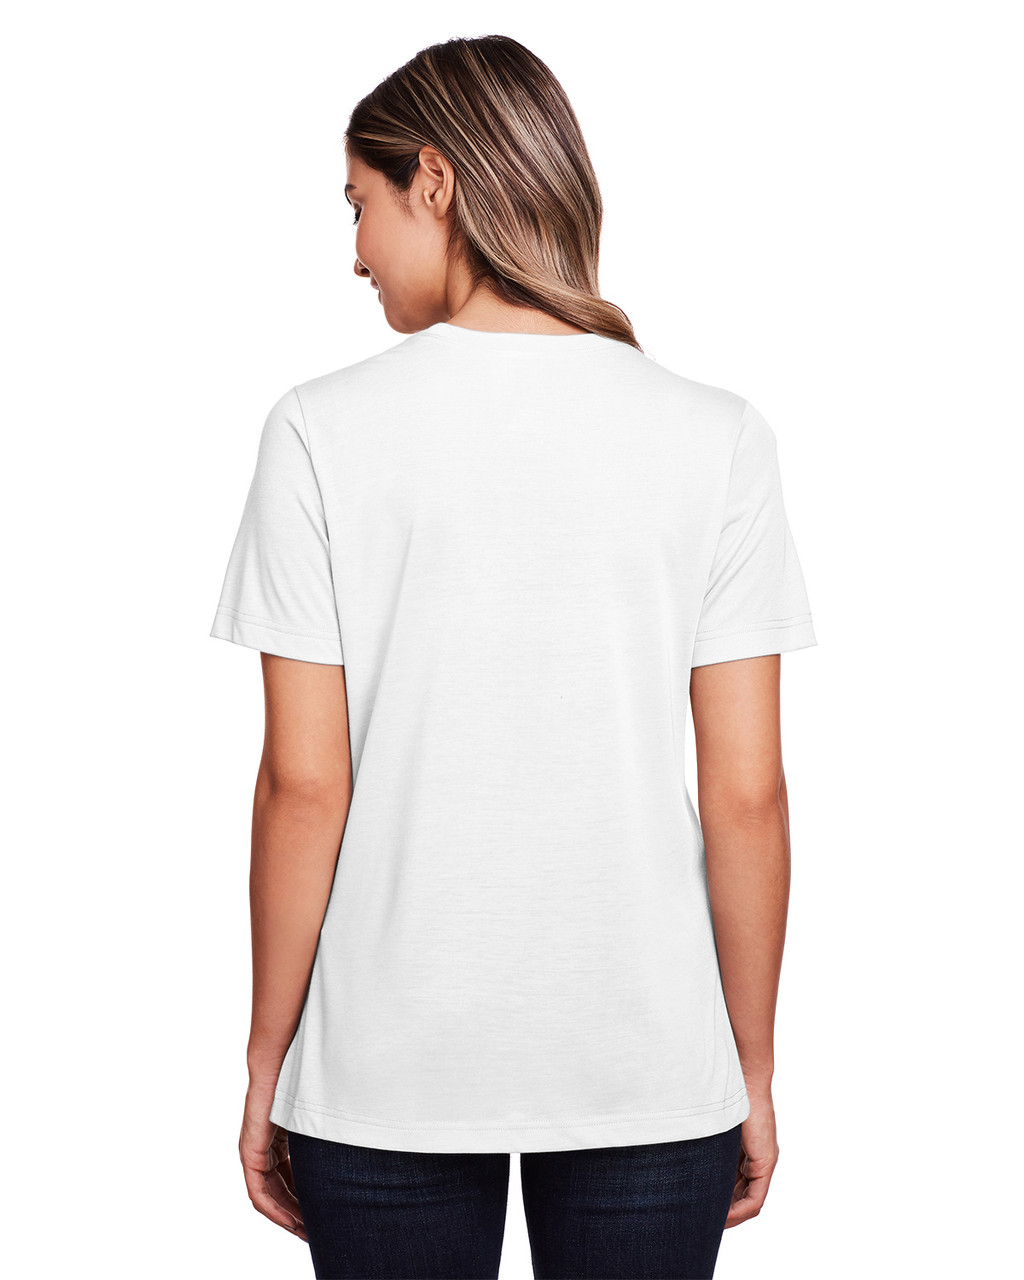 White - Back, CE111W Core 365 Ladies' Fusion ChromaSoft™ Performance T-Shirt | BlankClothing.ca